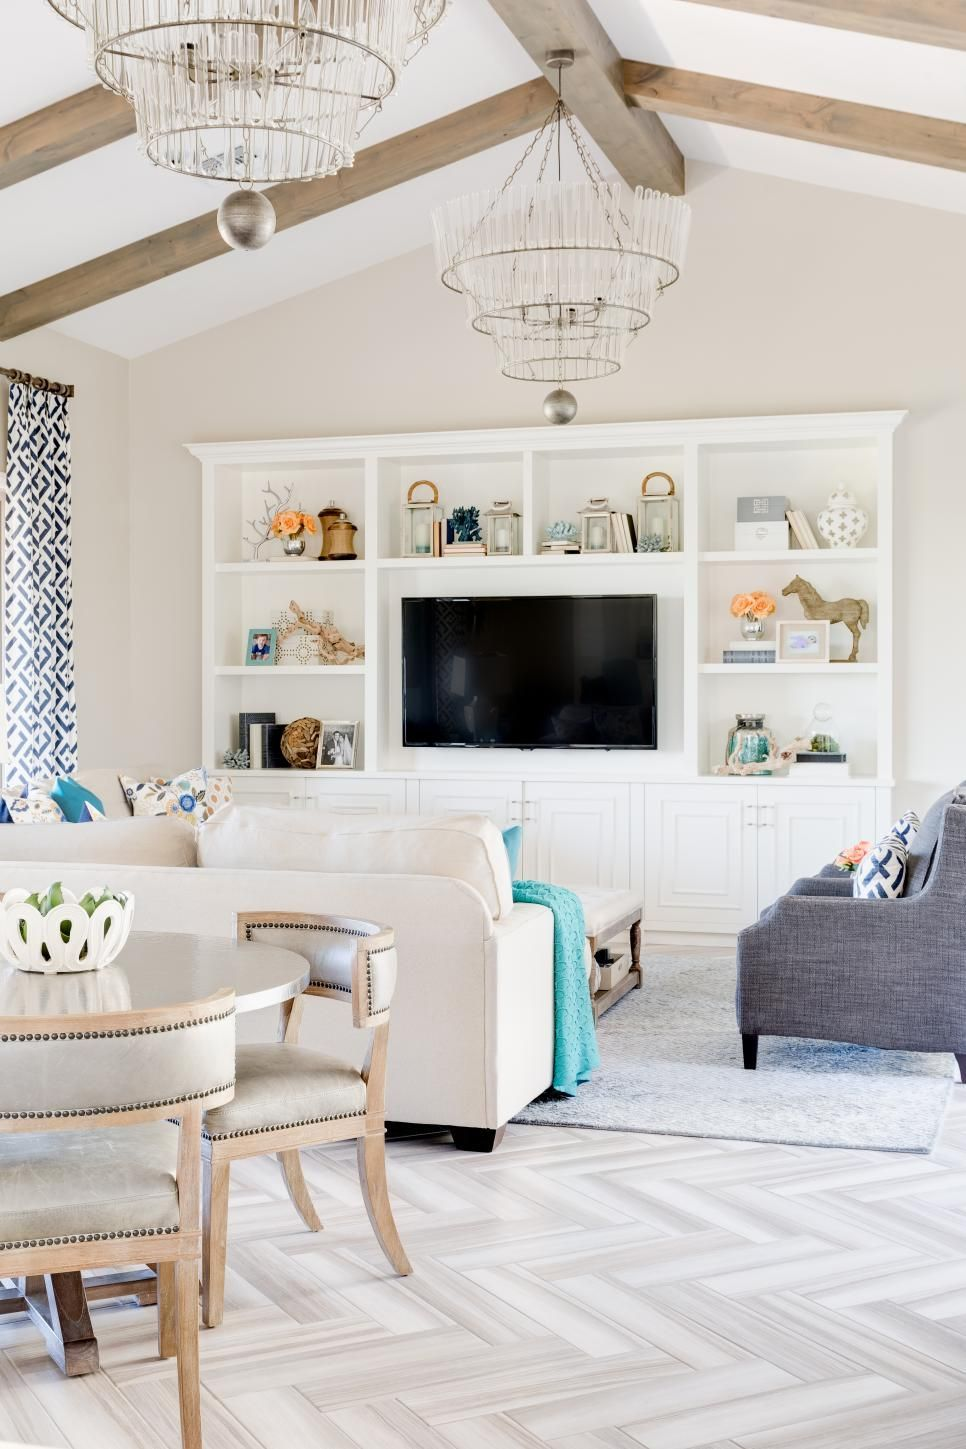 14 Ways to Decorate With Alabaster White | Hgtv, Decorating and ...